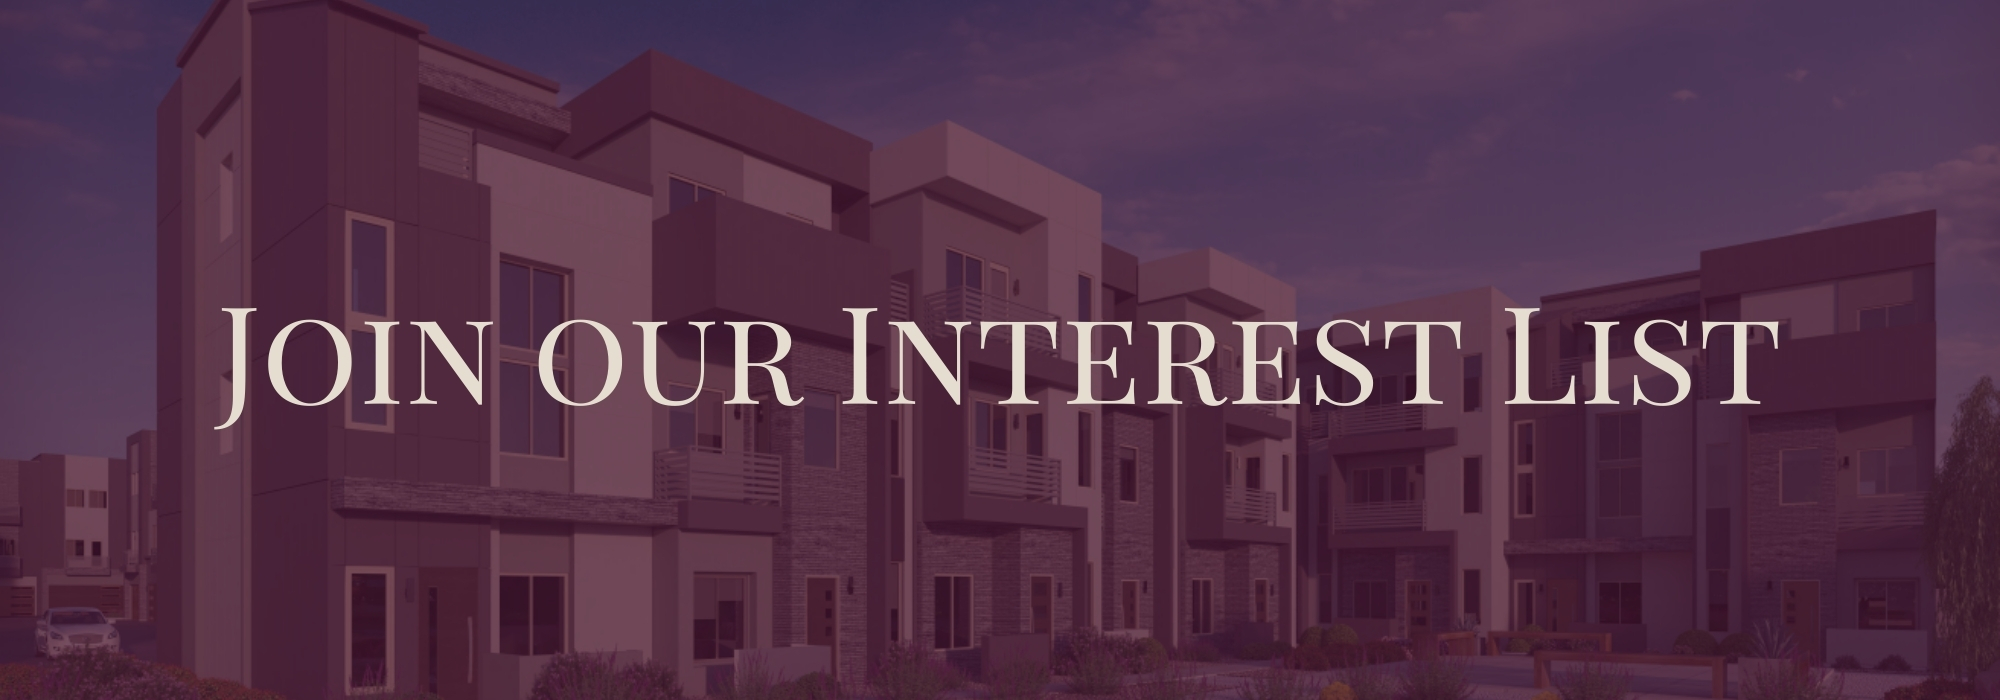 Learn more about Thrive townhomes